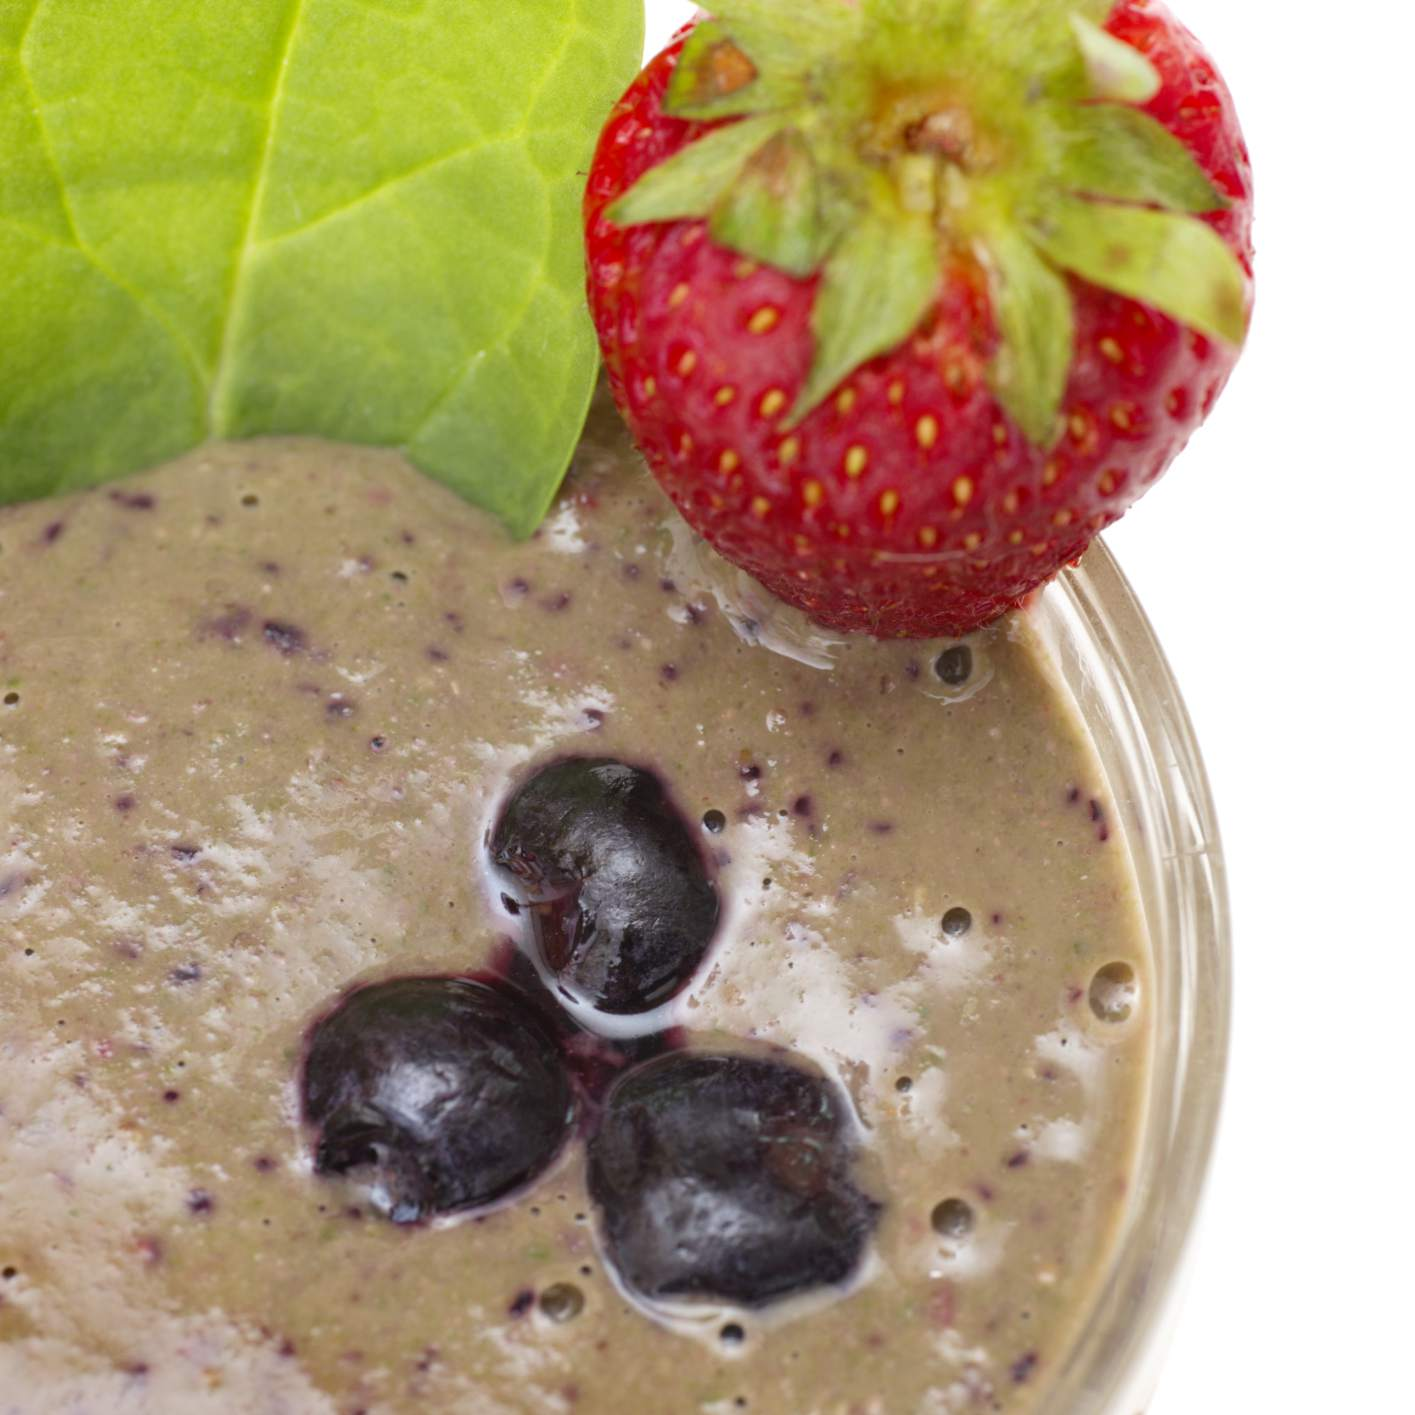 Blueberry spinach green smoothie - a raw vegan recipe